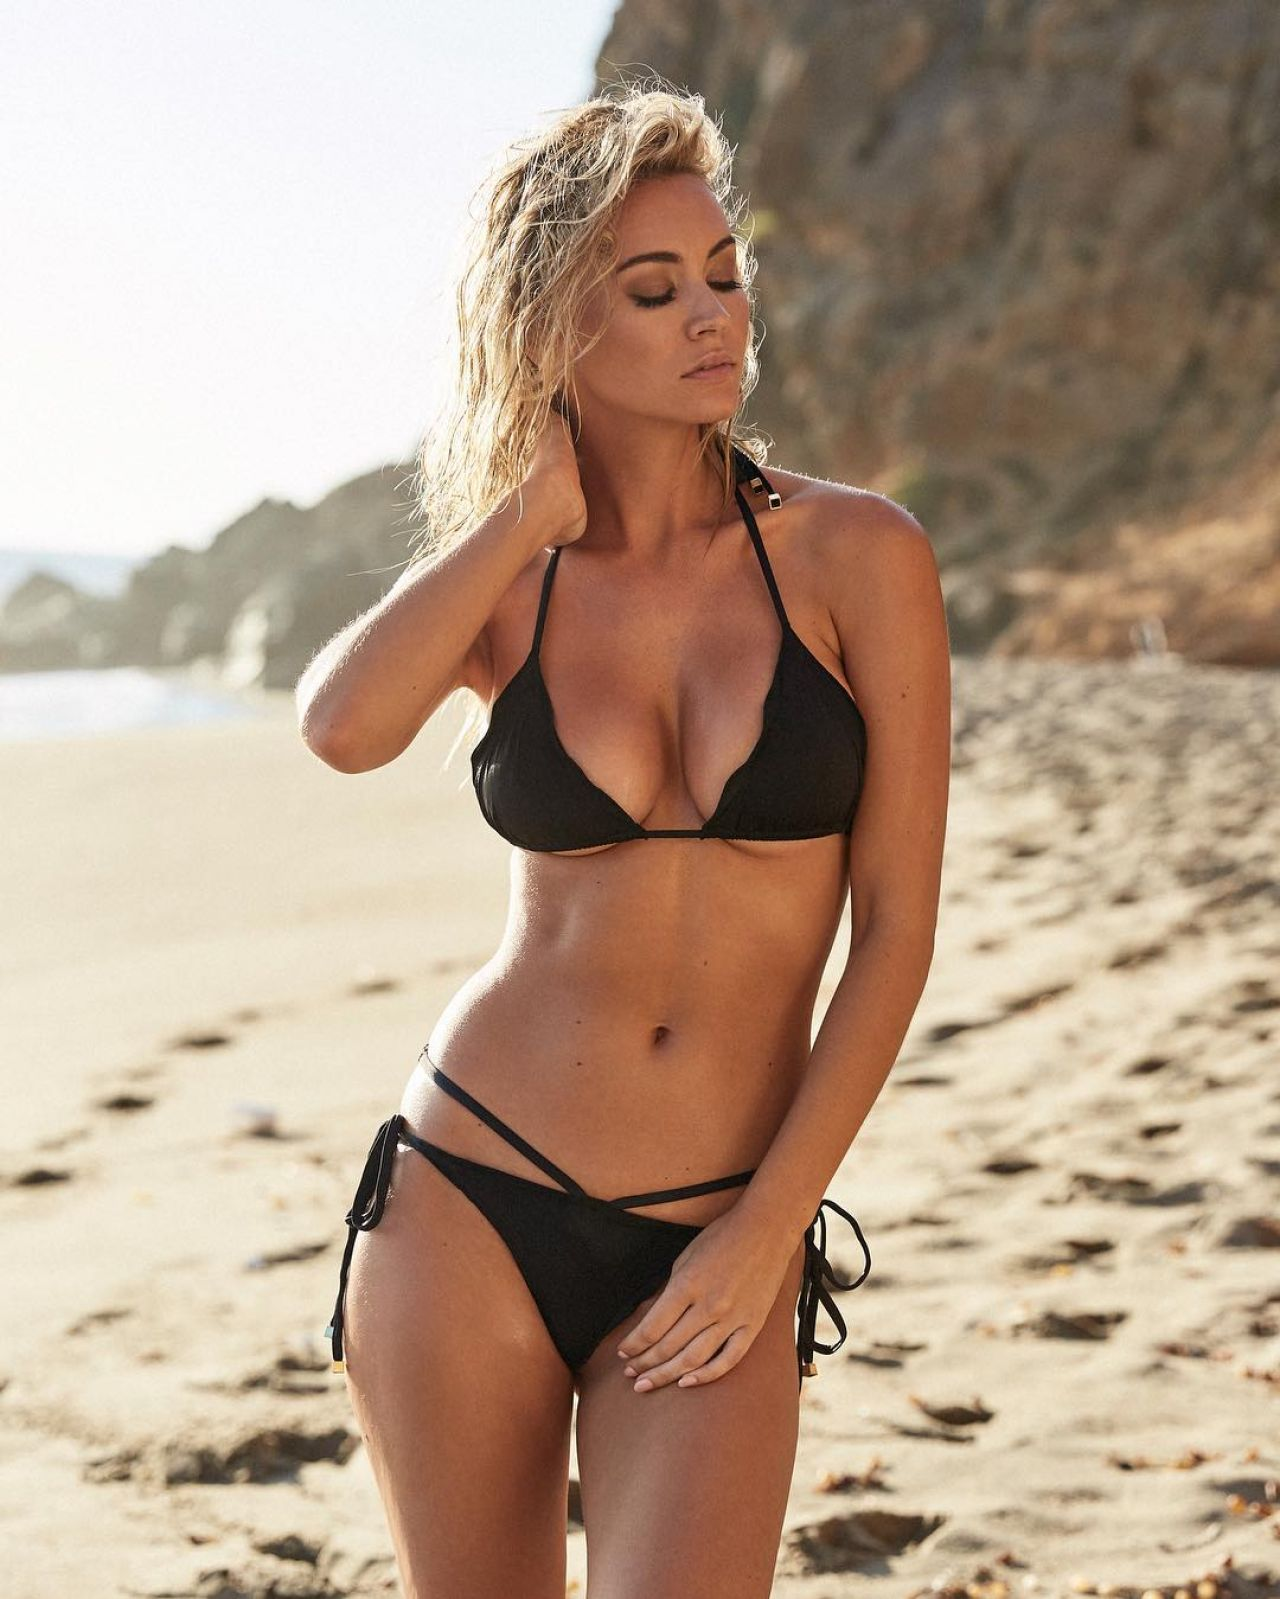 bryana holly pictures